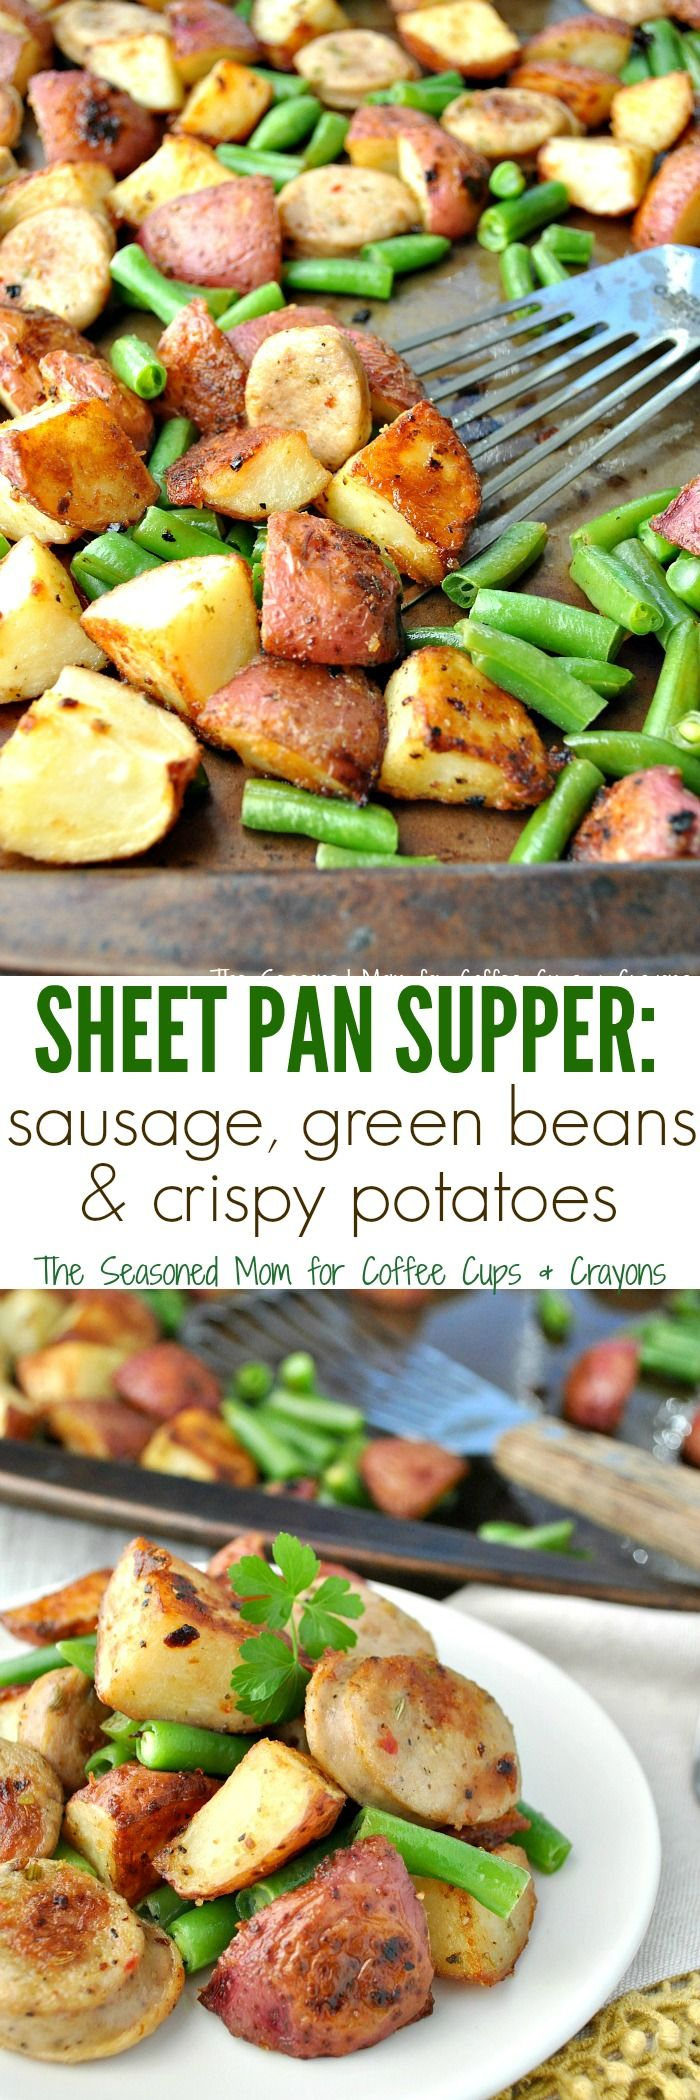 Sheet Pan Supper: Sausage, Green Beans & Crispy Potatoes | Coffee Cups and Crayons